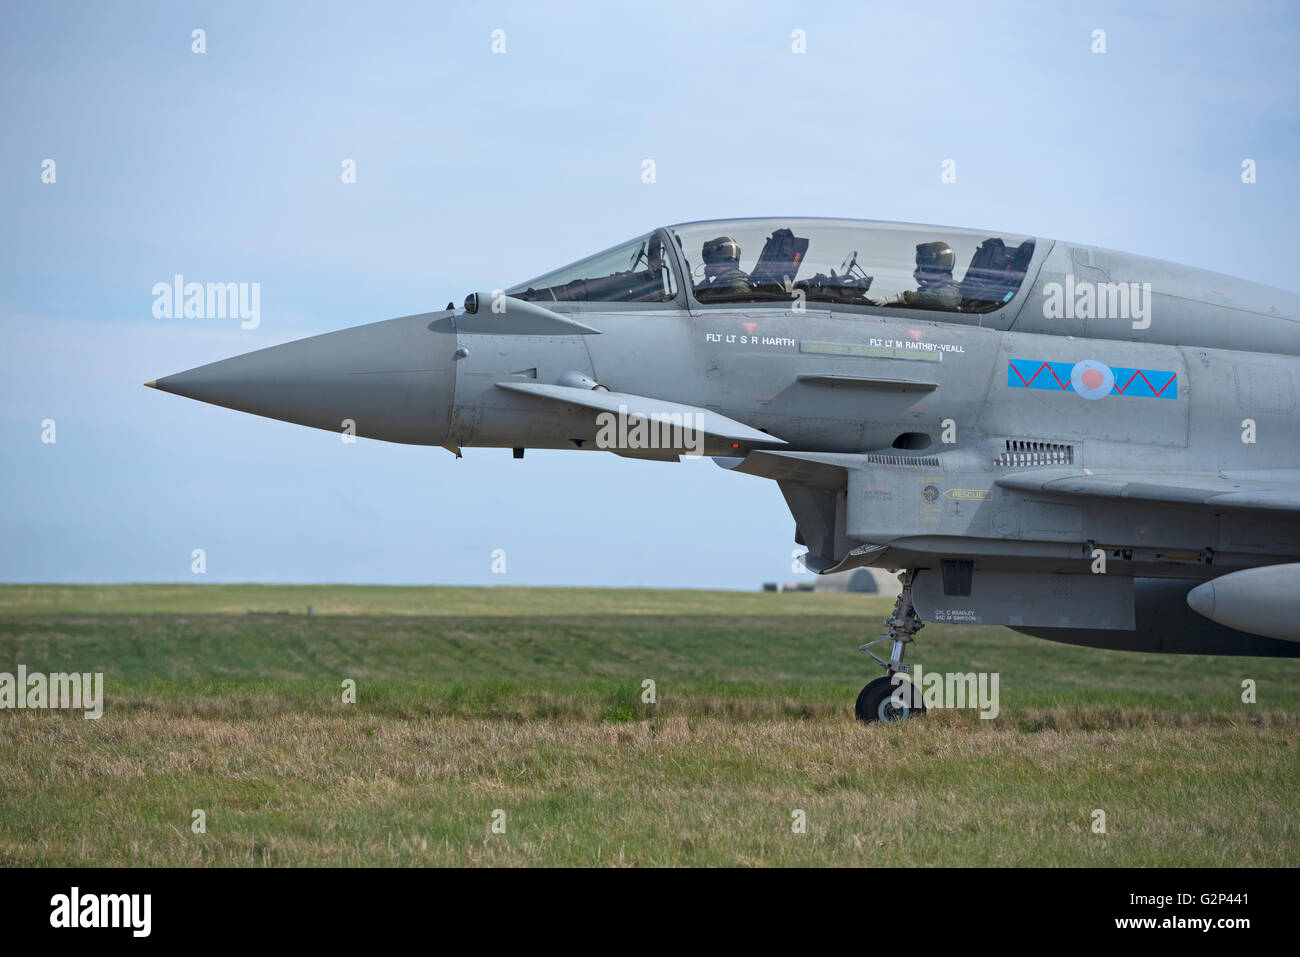 RAF two seater variant Eurofighter FRG4 Typhoon twin engined Jet Military fighter Aircraft.  SCO 11,258. - Stock Image